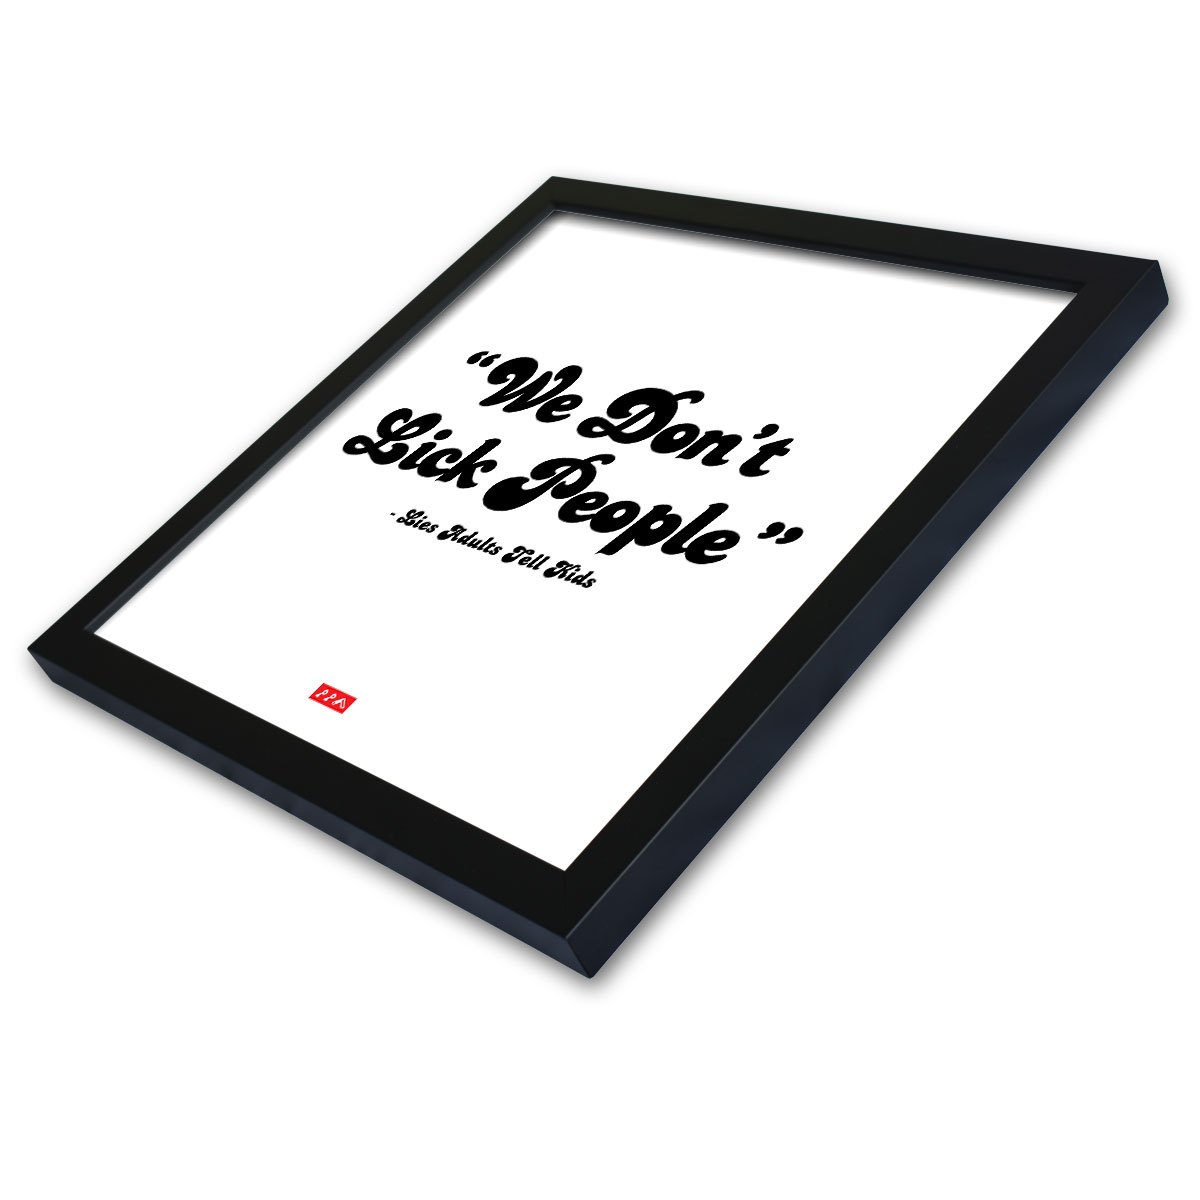 """""""WE DON'T LICK PEOPLE lies adults tell kids"""" funny sayings framed prints by kikicutt"""